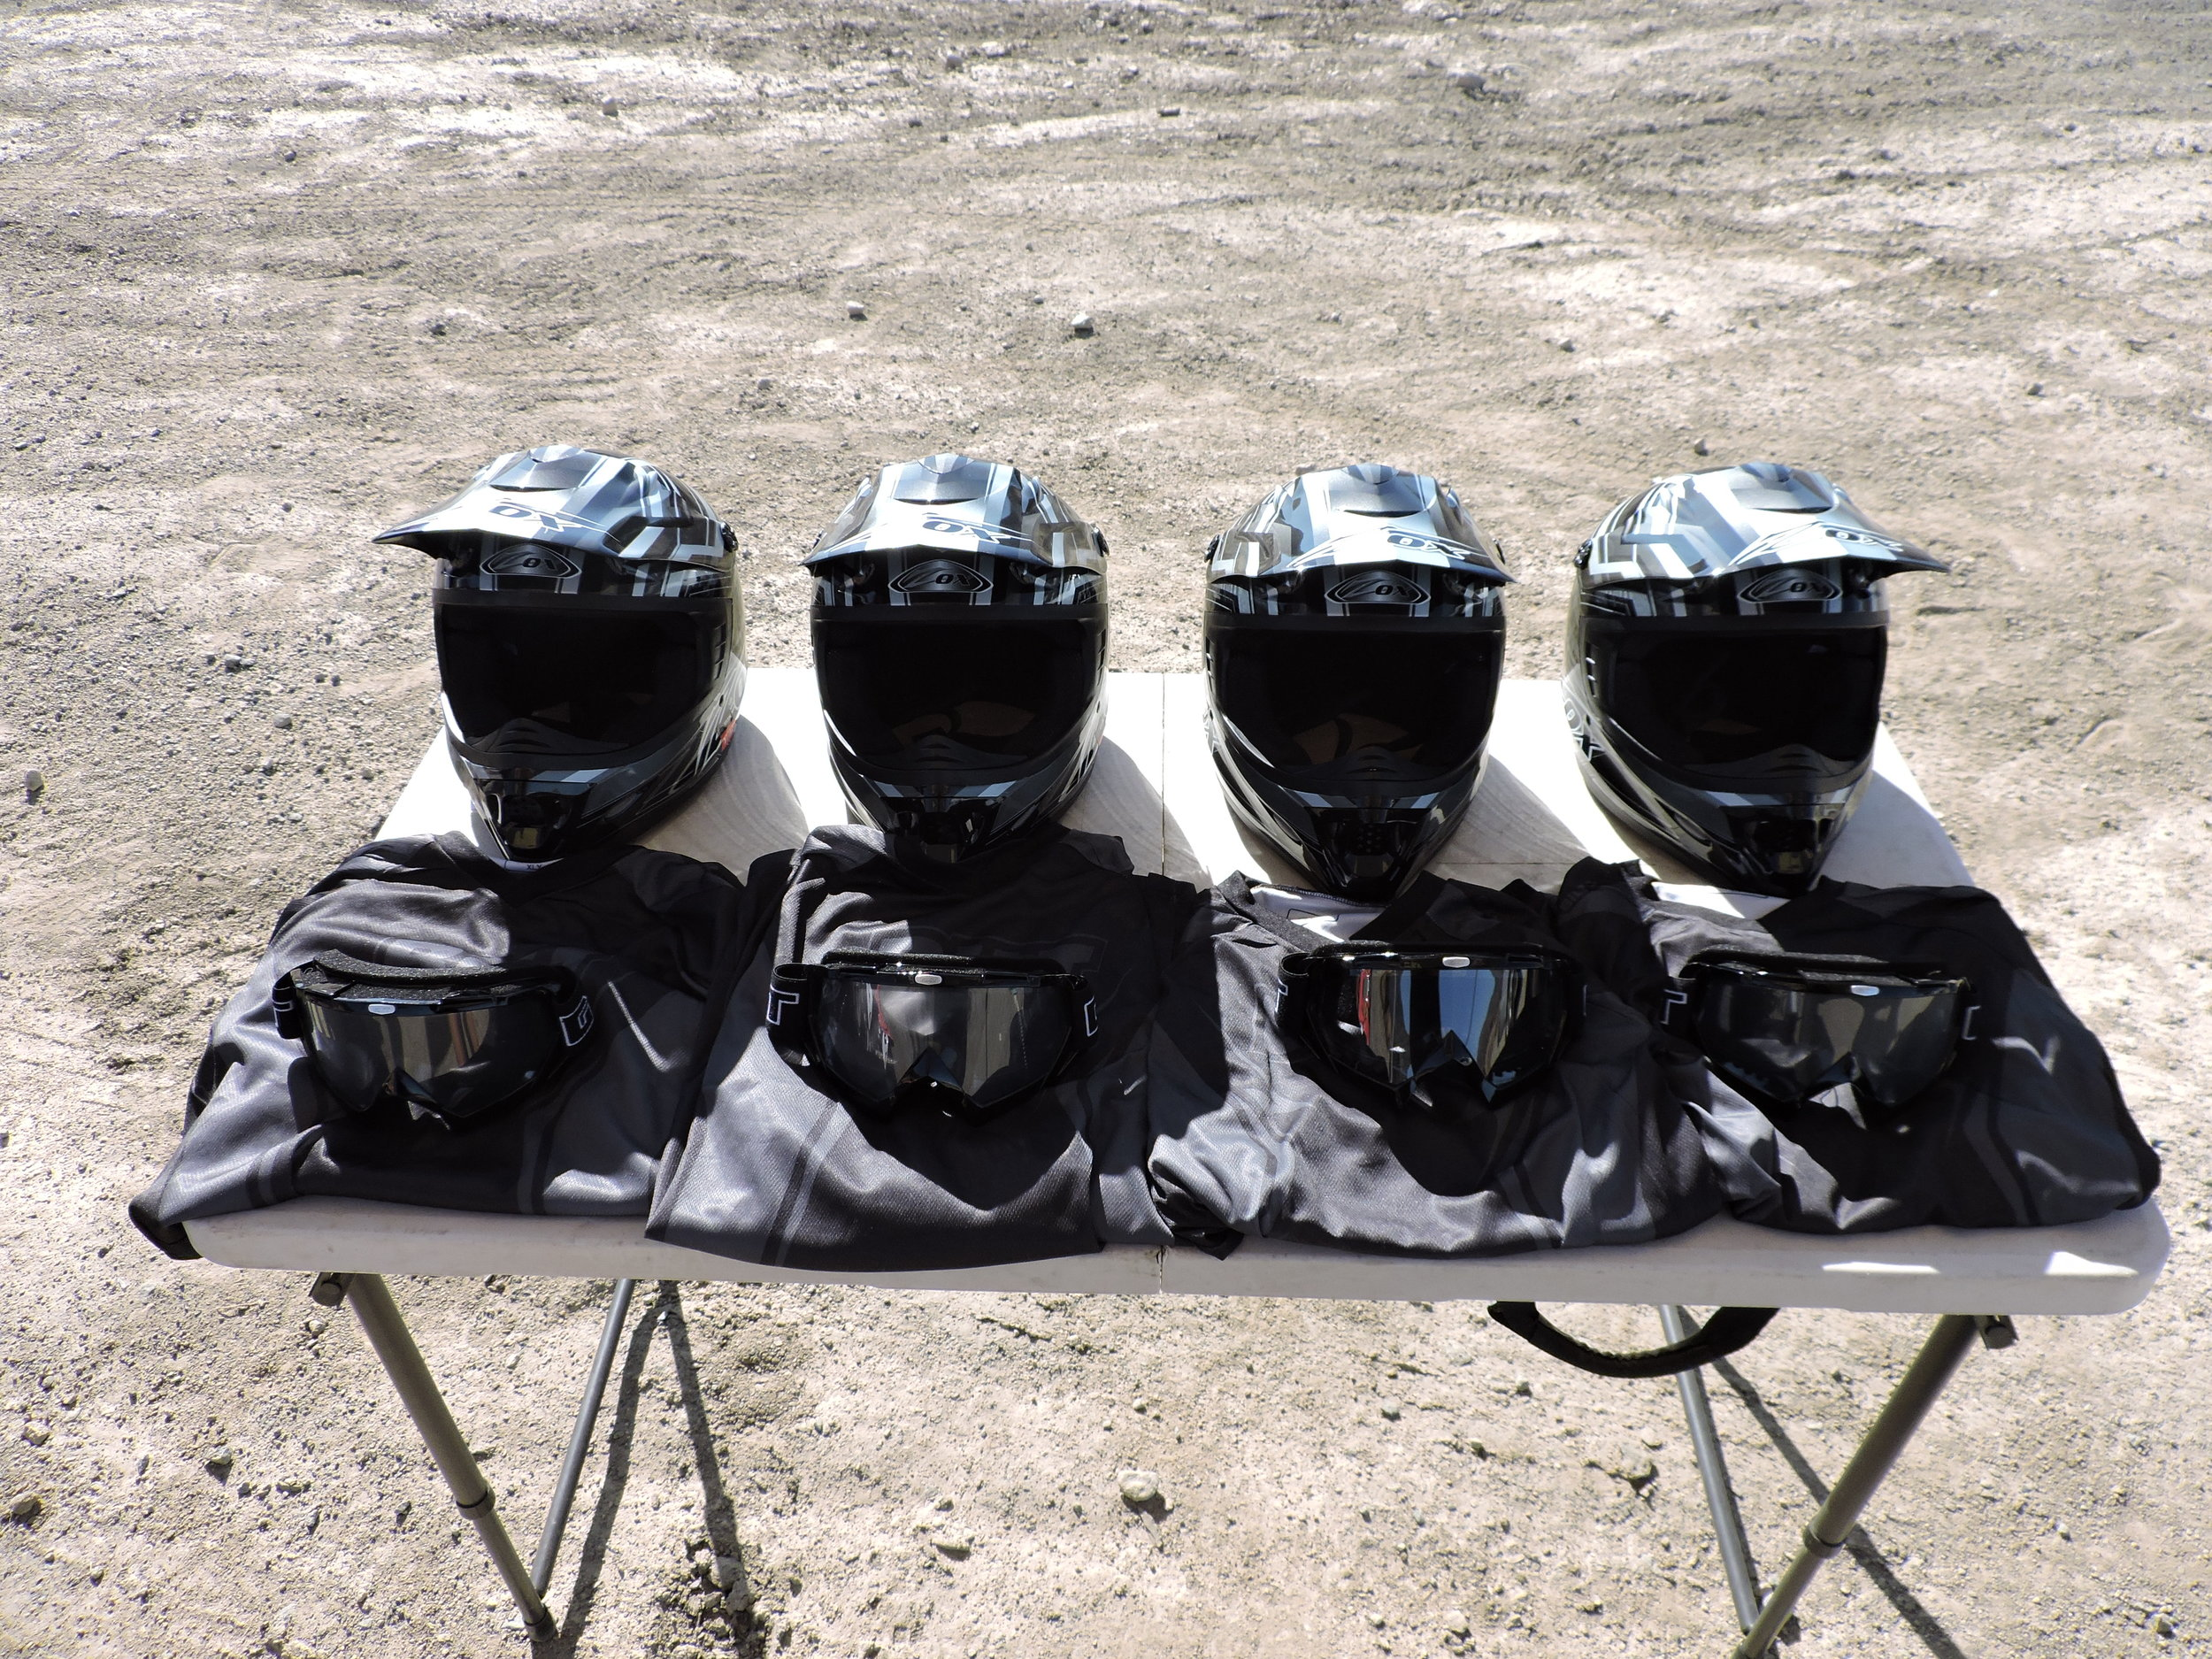 Full set of safety gear available for every rider